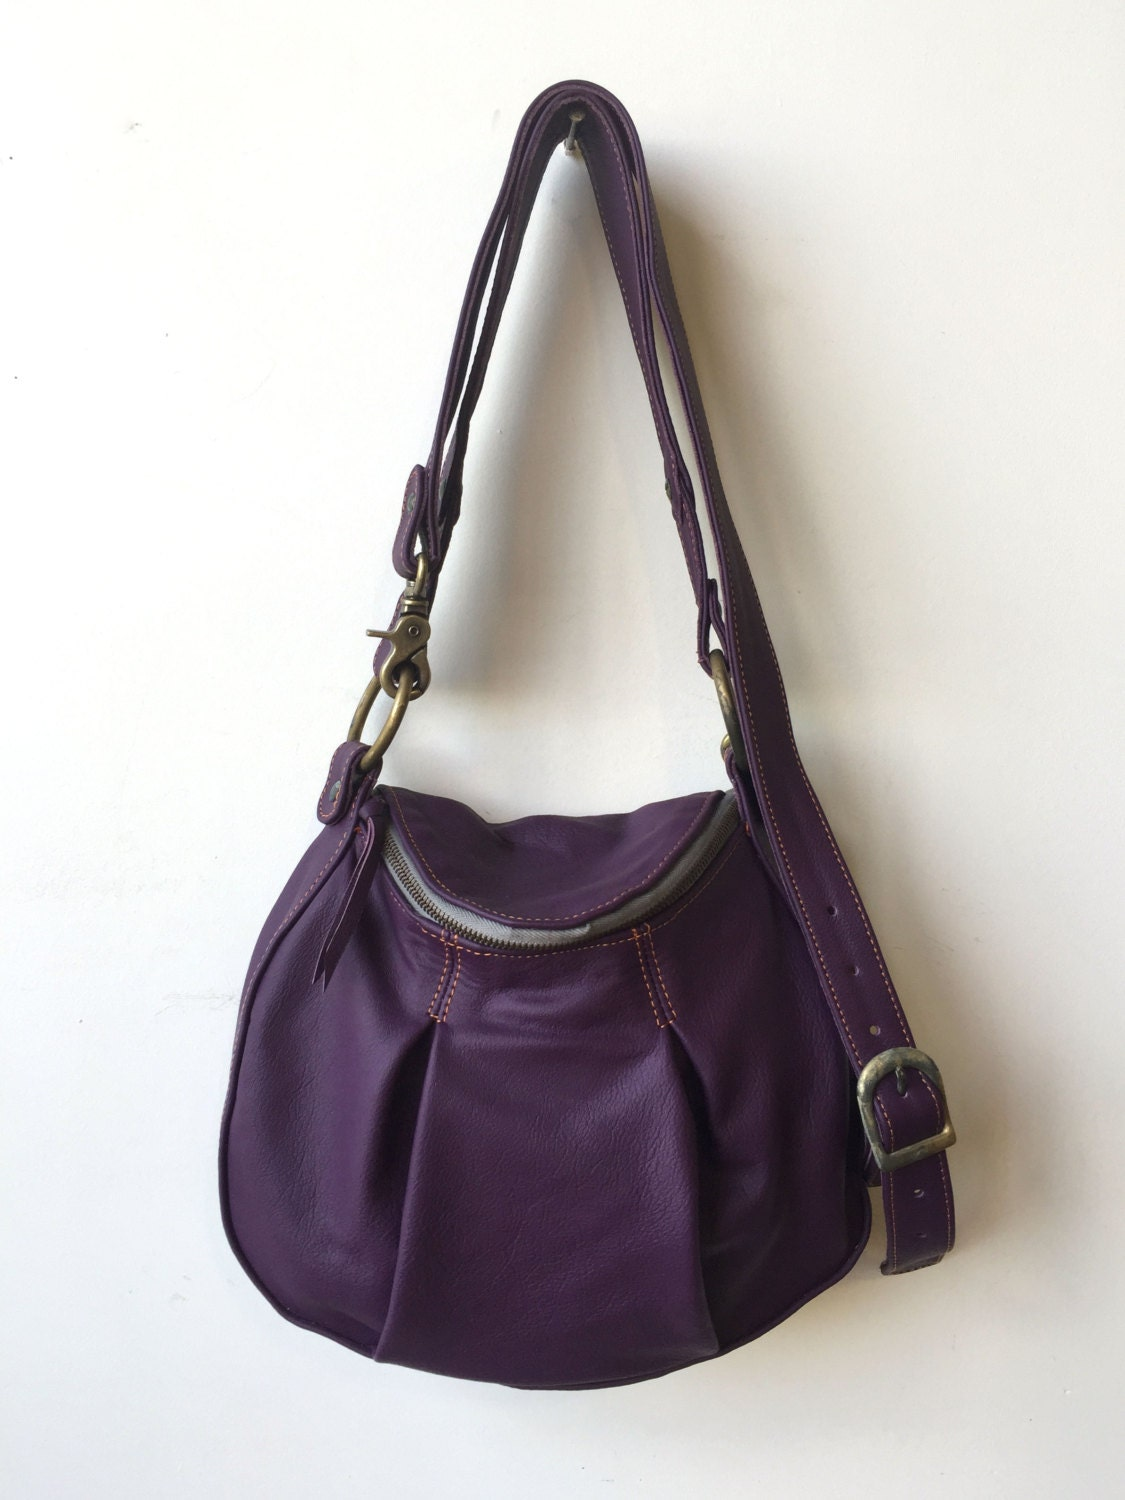 Violet Leather Bag Made to Order purple by littlewingsdesigns1125 x 1500 jpeg 136kB